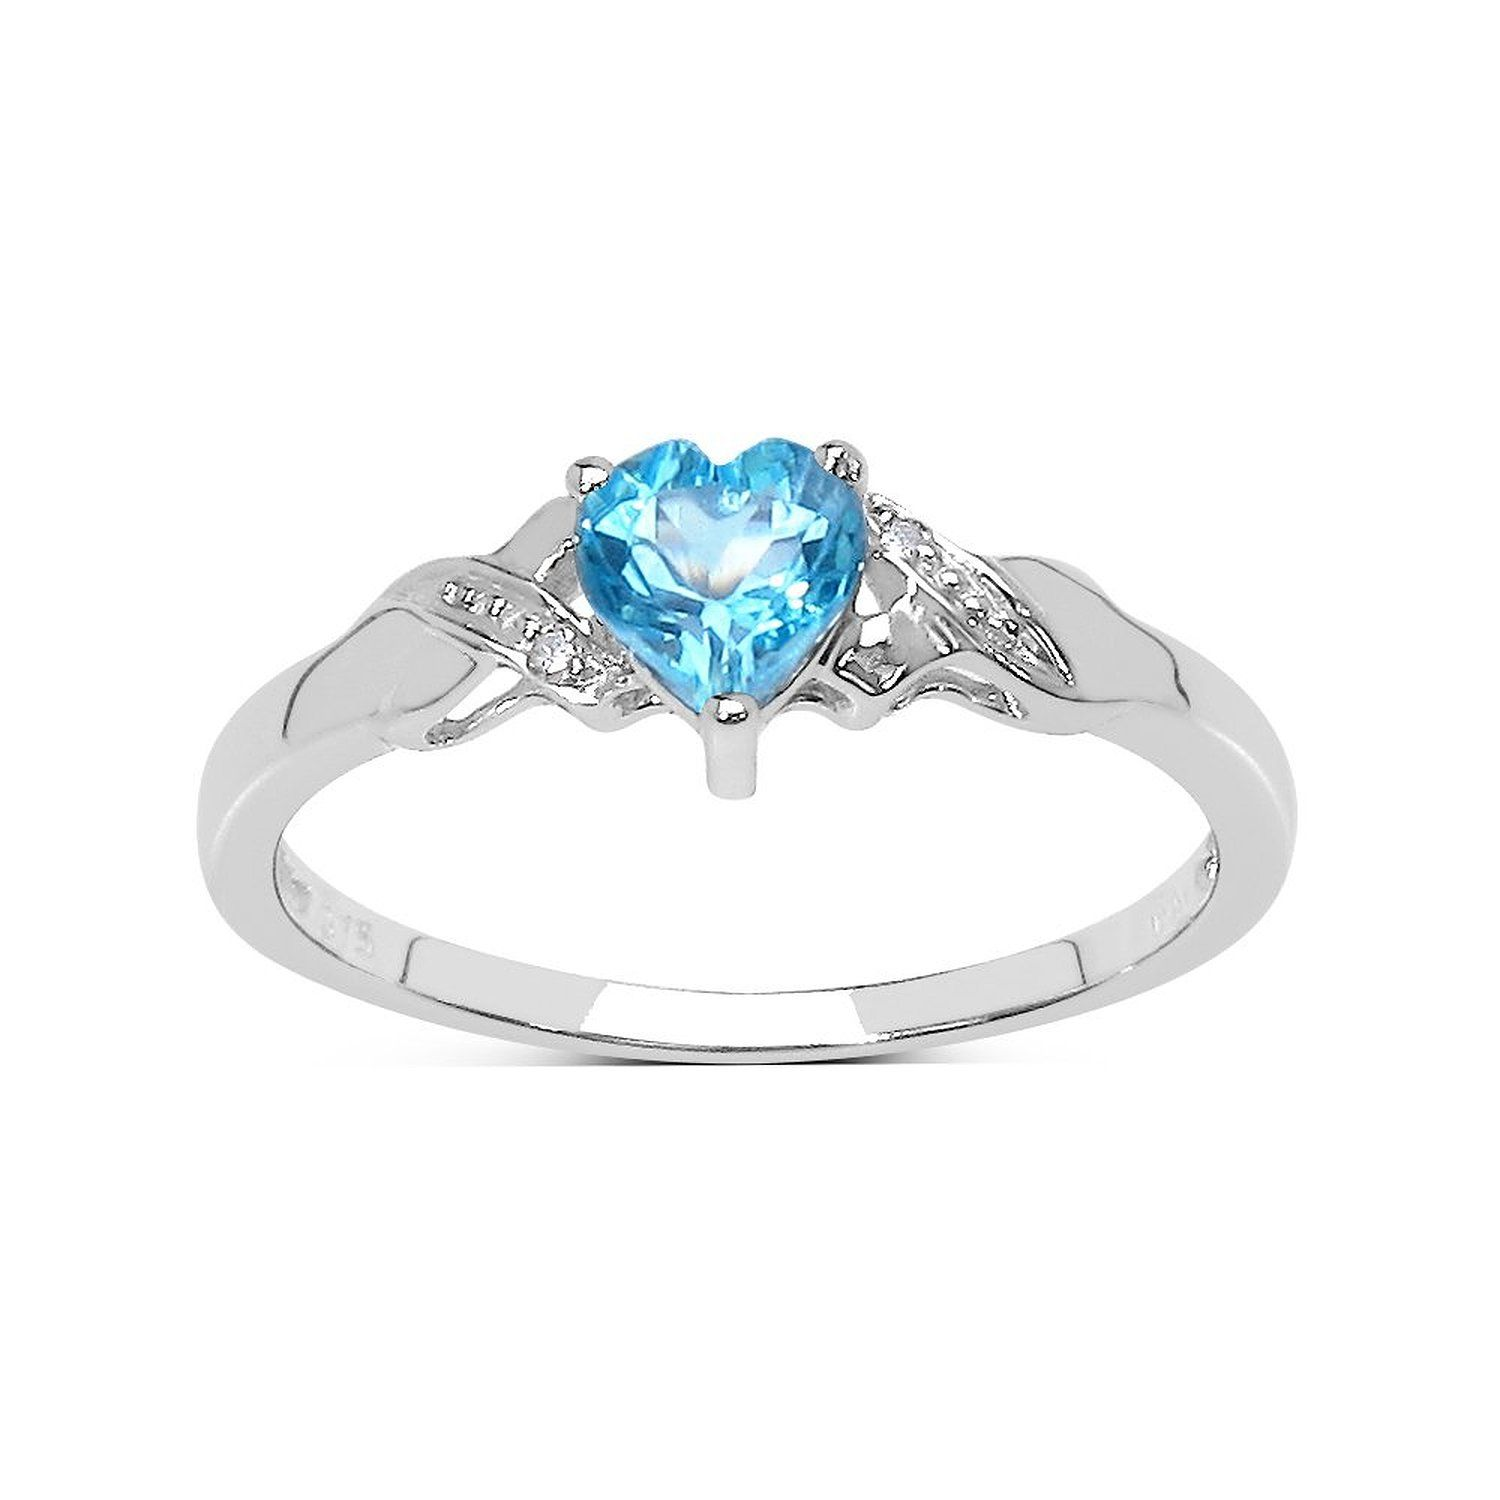 8534e86d61f Collection Bague topaze bleue   9ct or blanc en forme de coeur ...